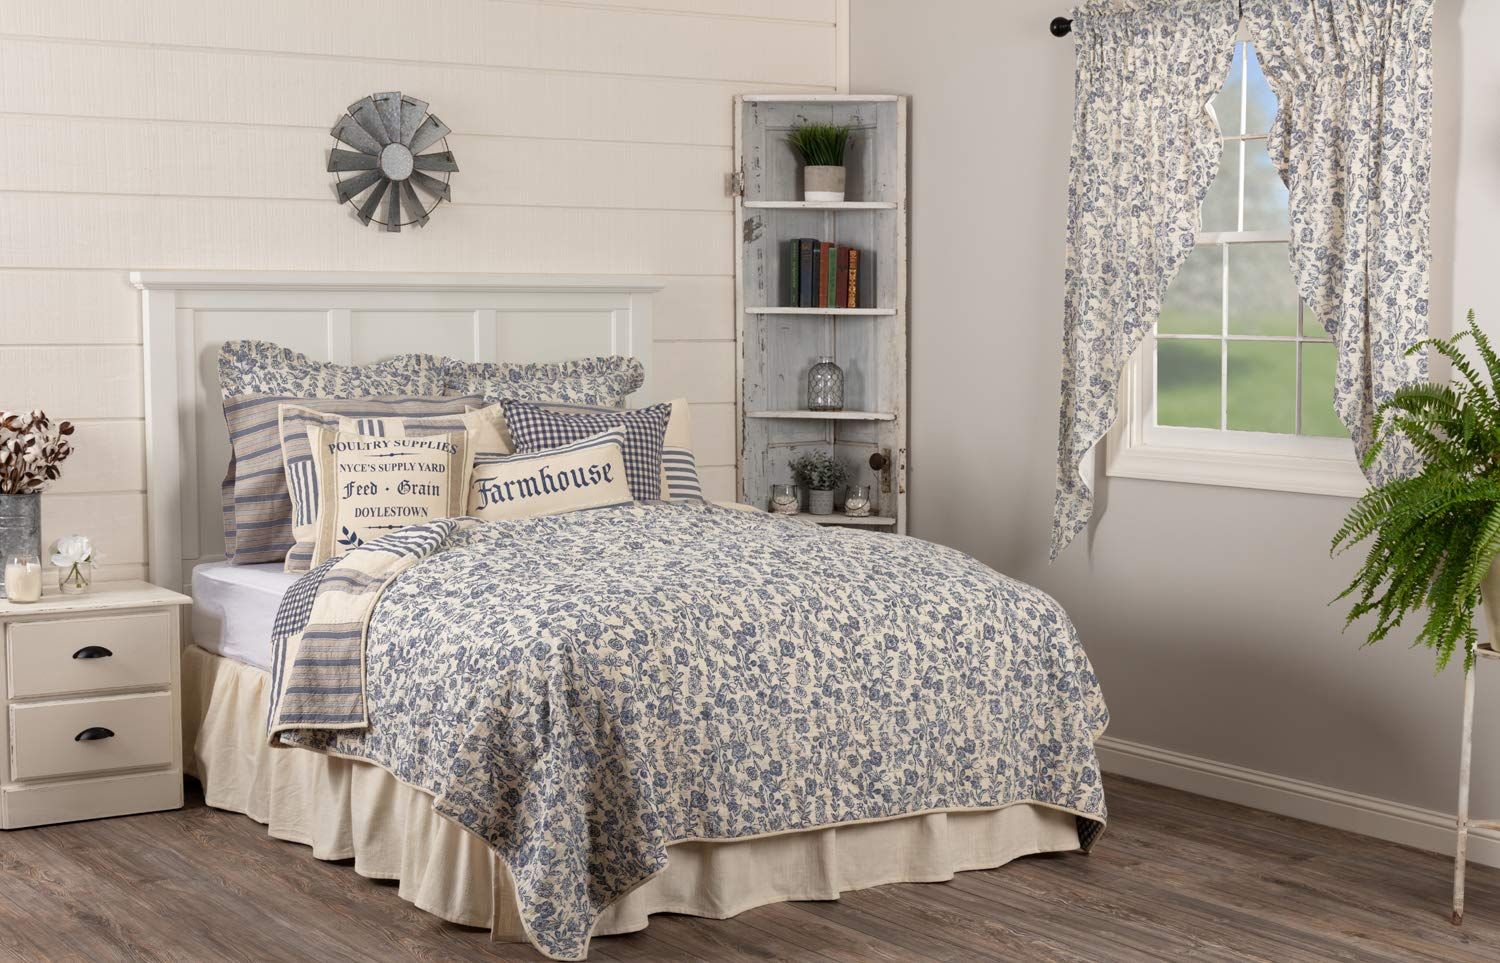 Piper Classics Doylestown Blue Queen Patchwork Quilt, Gingham Checks, Grain Sack & Ticking Stripes, Reversible to Floral Print, Blue & Cream Vintage Farmhouse Bedding, Rustic Country, Cottage Bedroom by Piper Classics (Image #4)